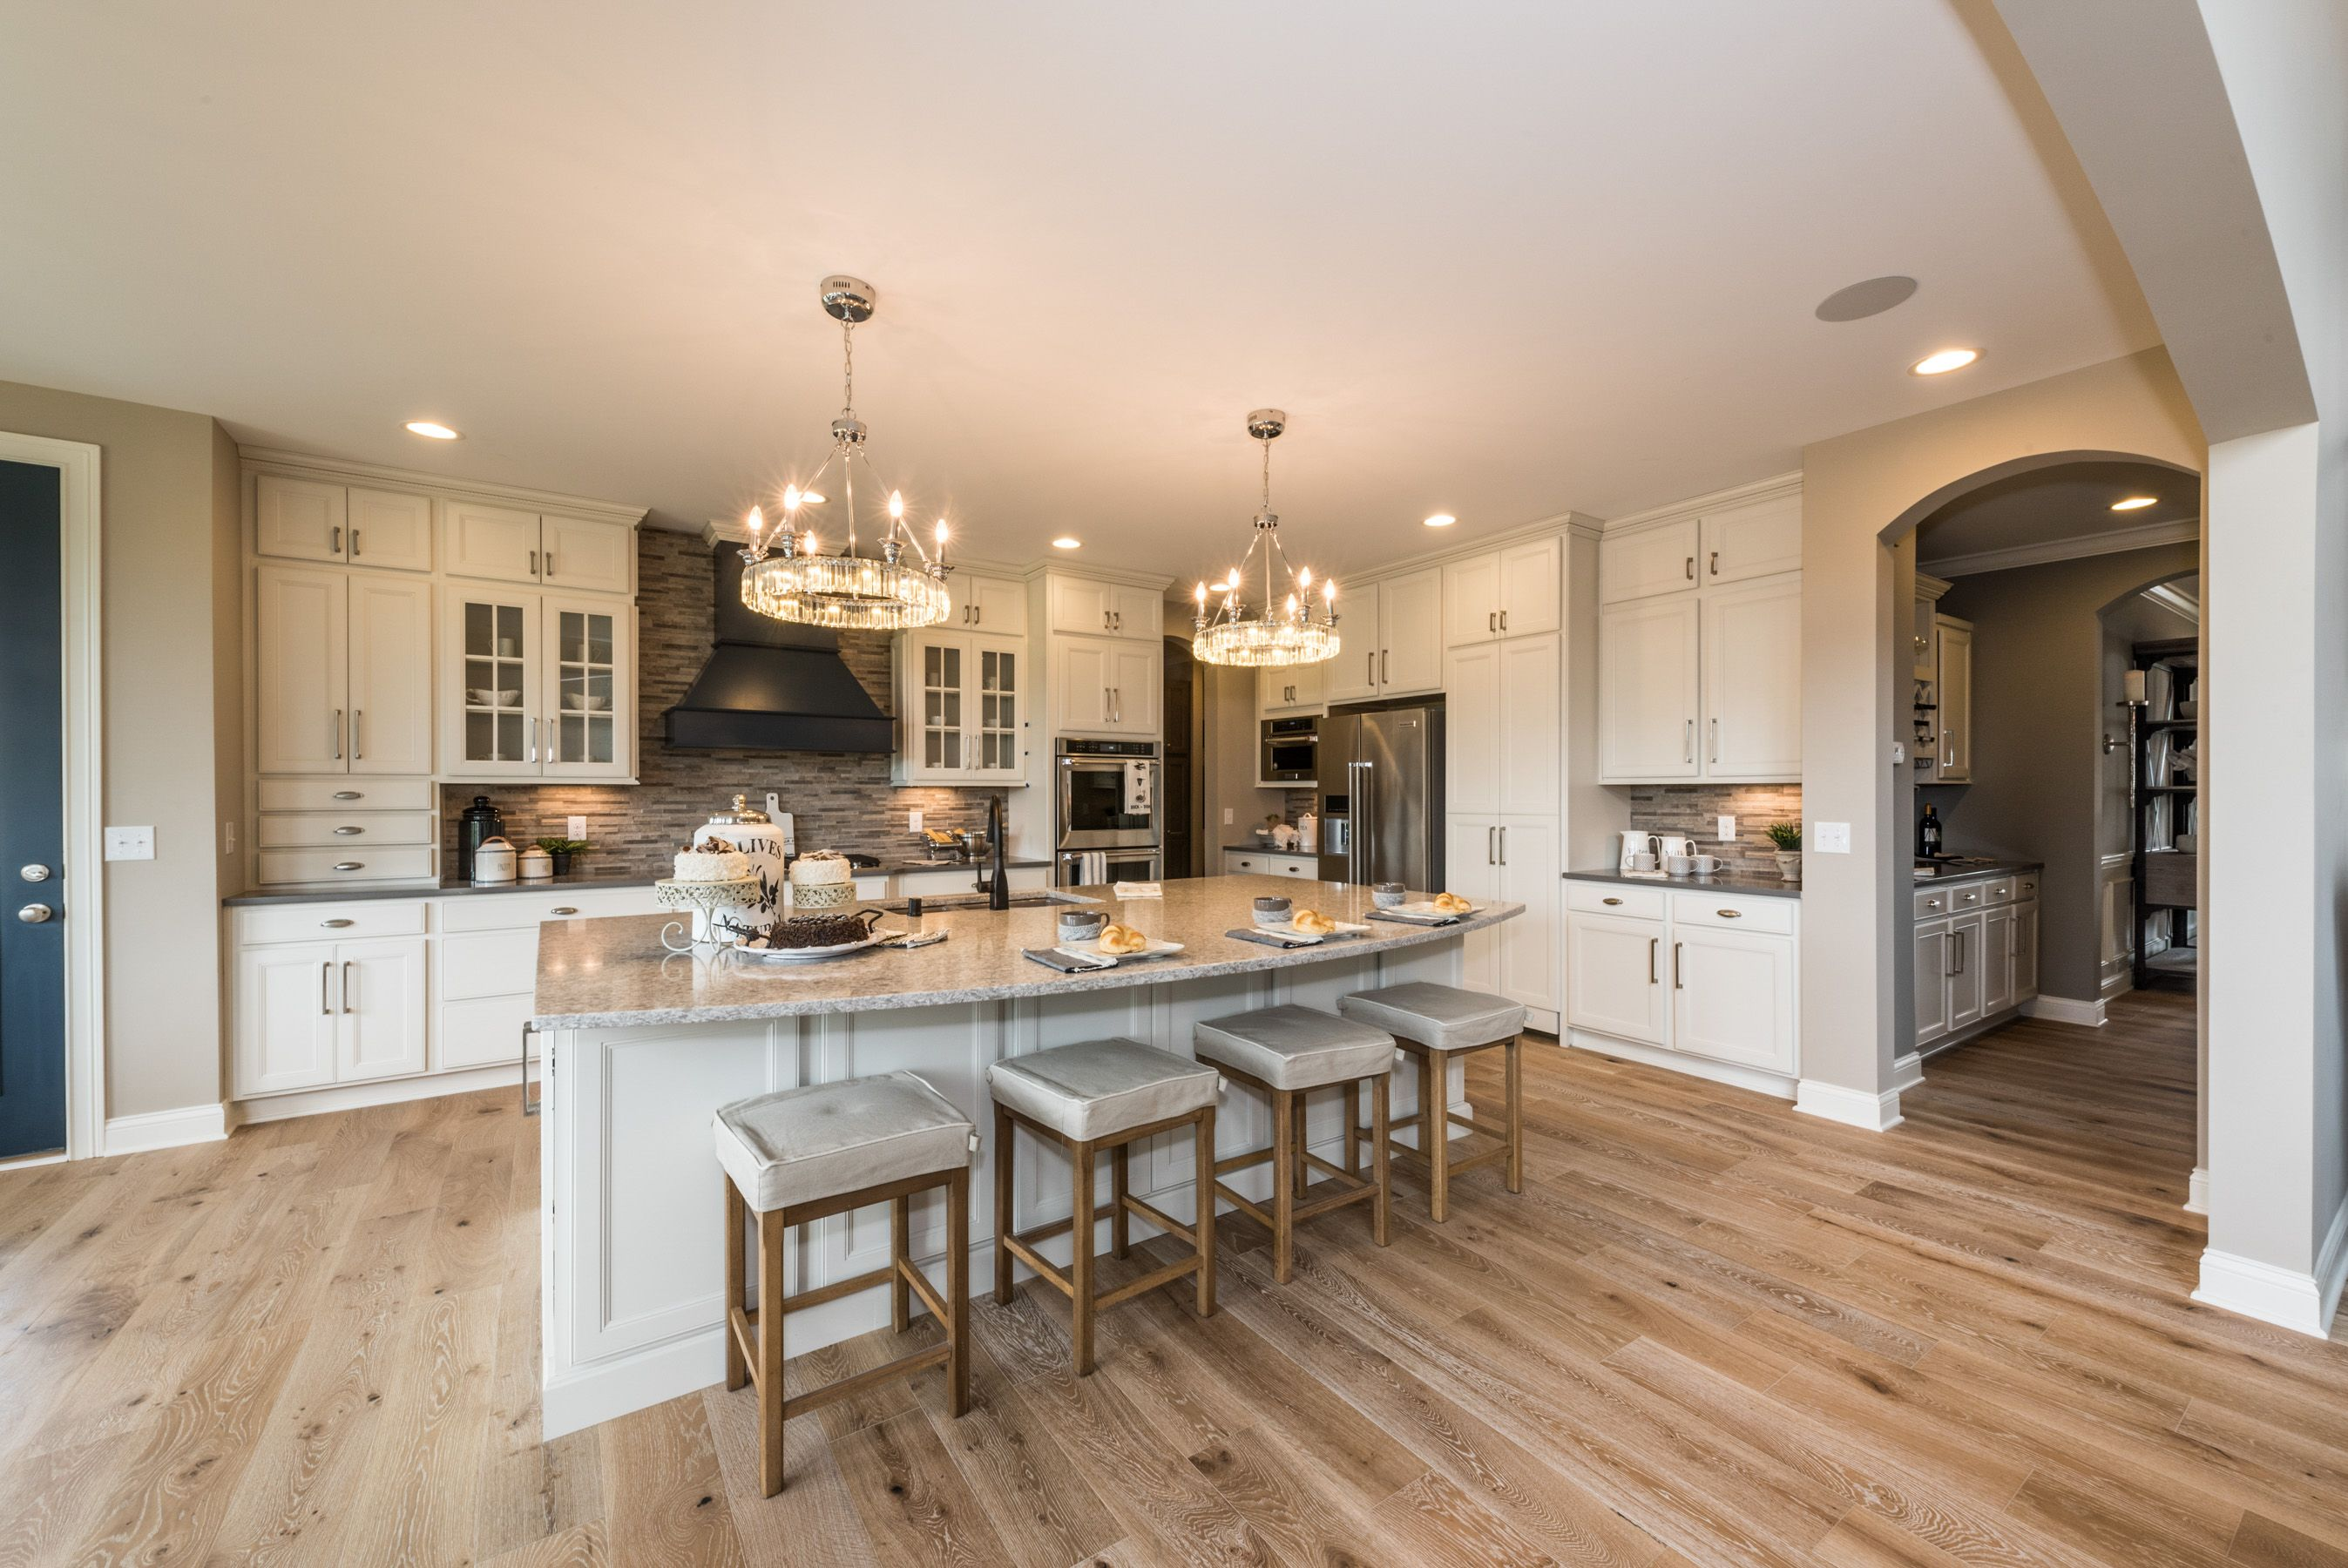 This Stunning Kitchen Features Floor To Ceiling White Cabinets, A